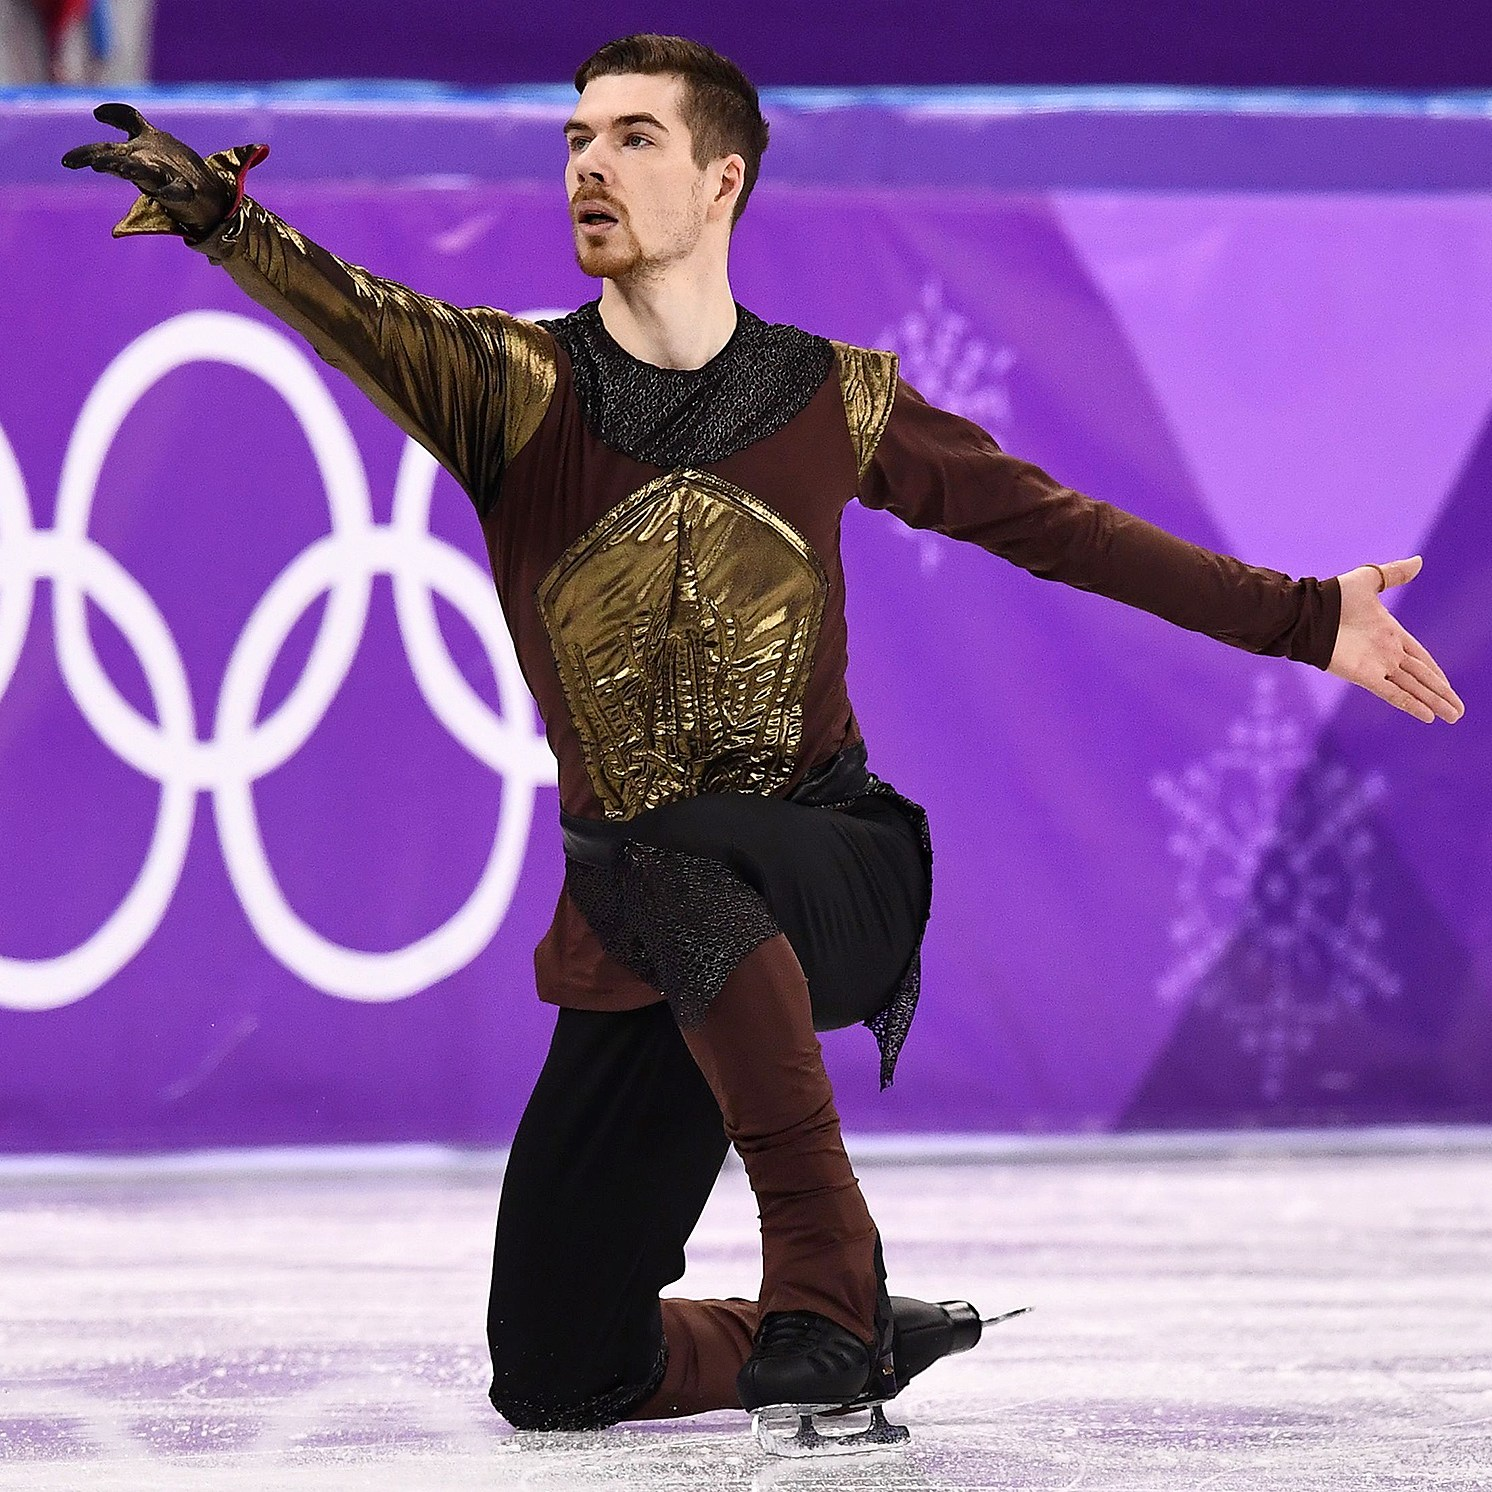 Paul Fentz, Game of Thrones, Free Skate, Germany, Pyeongchang 2018 Winter Olympic Games